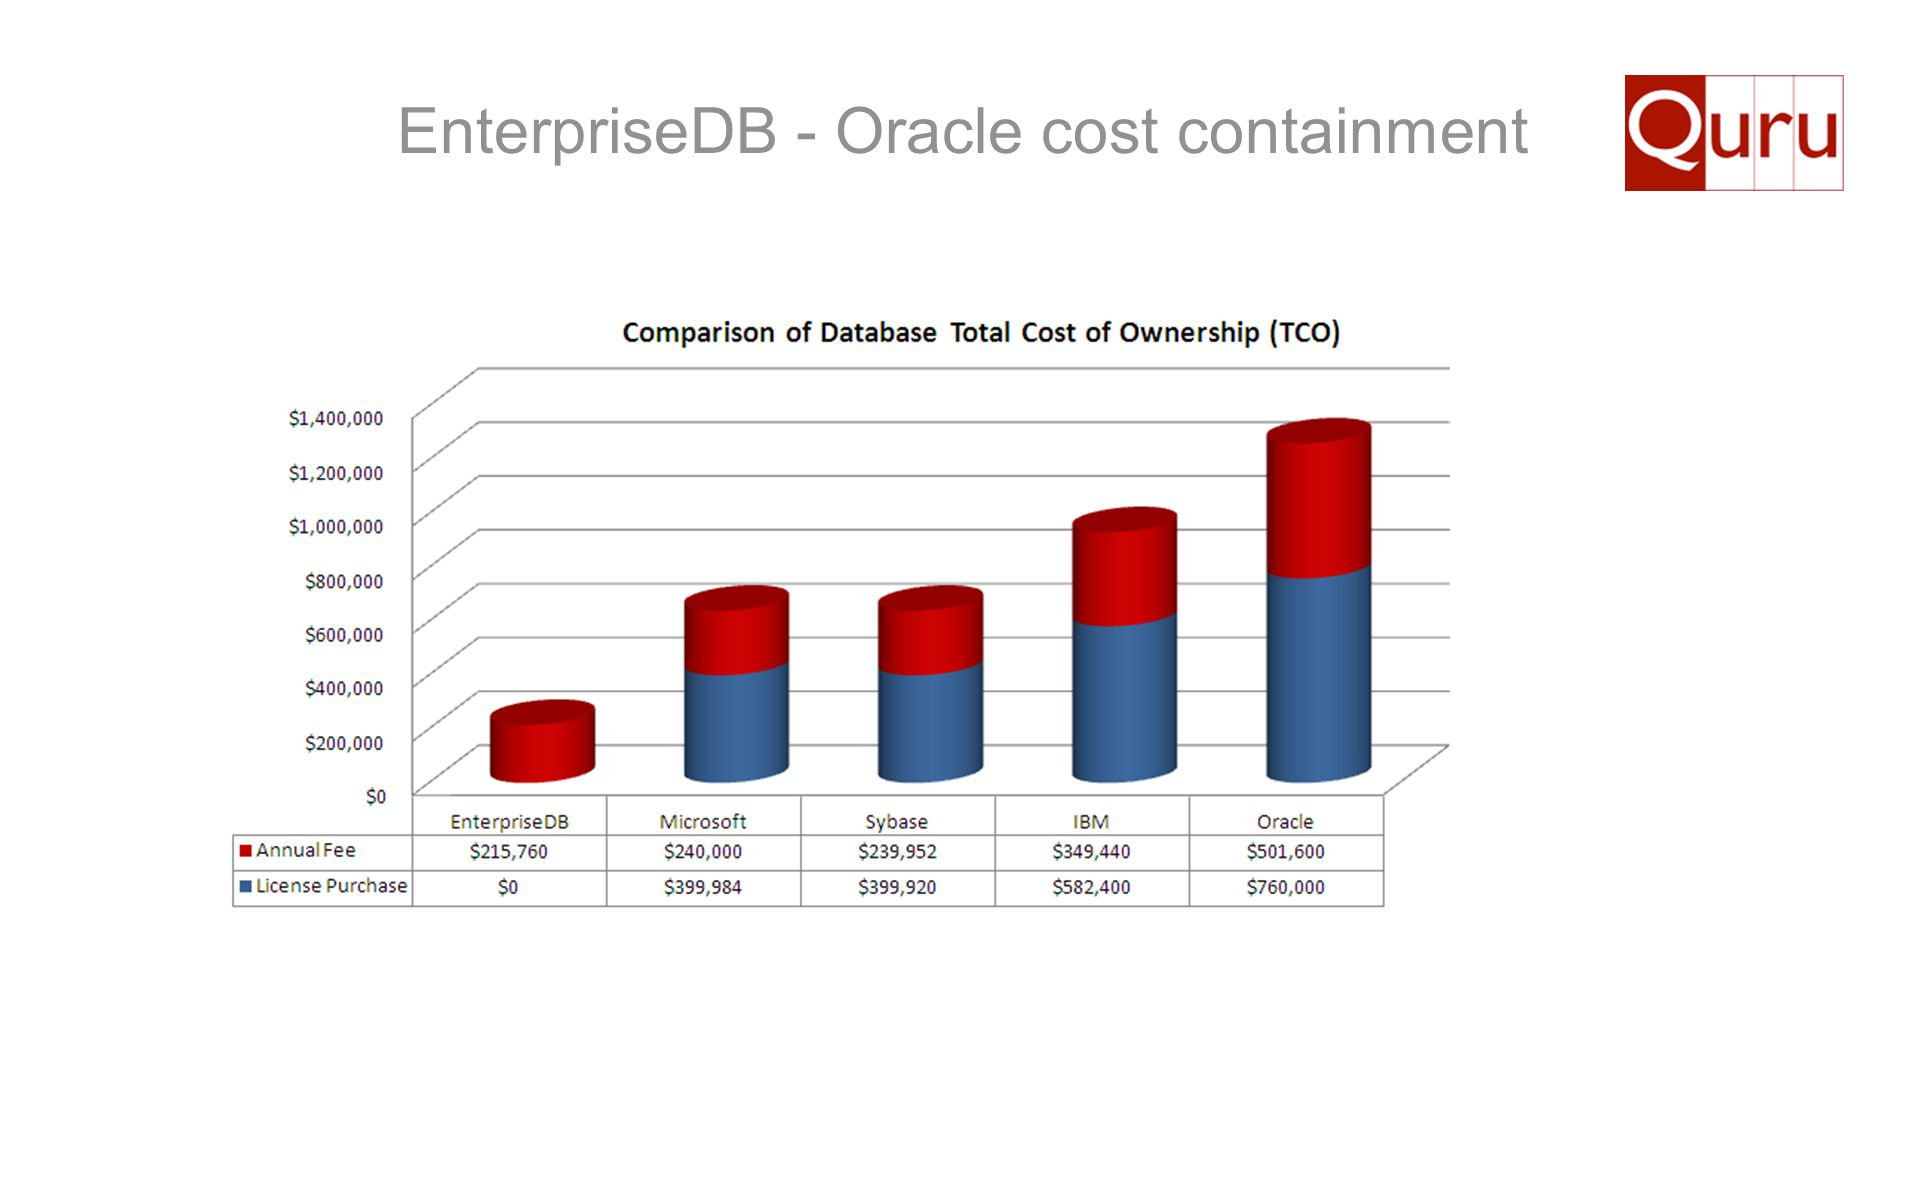 EnterpriseDB - Oracle cost containment